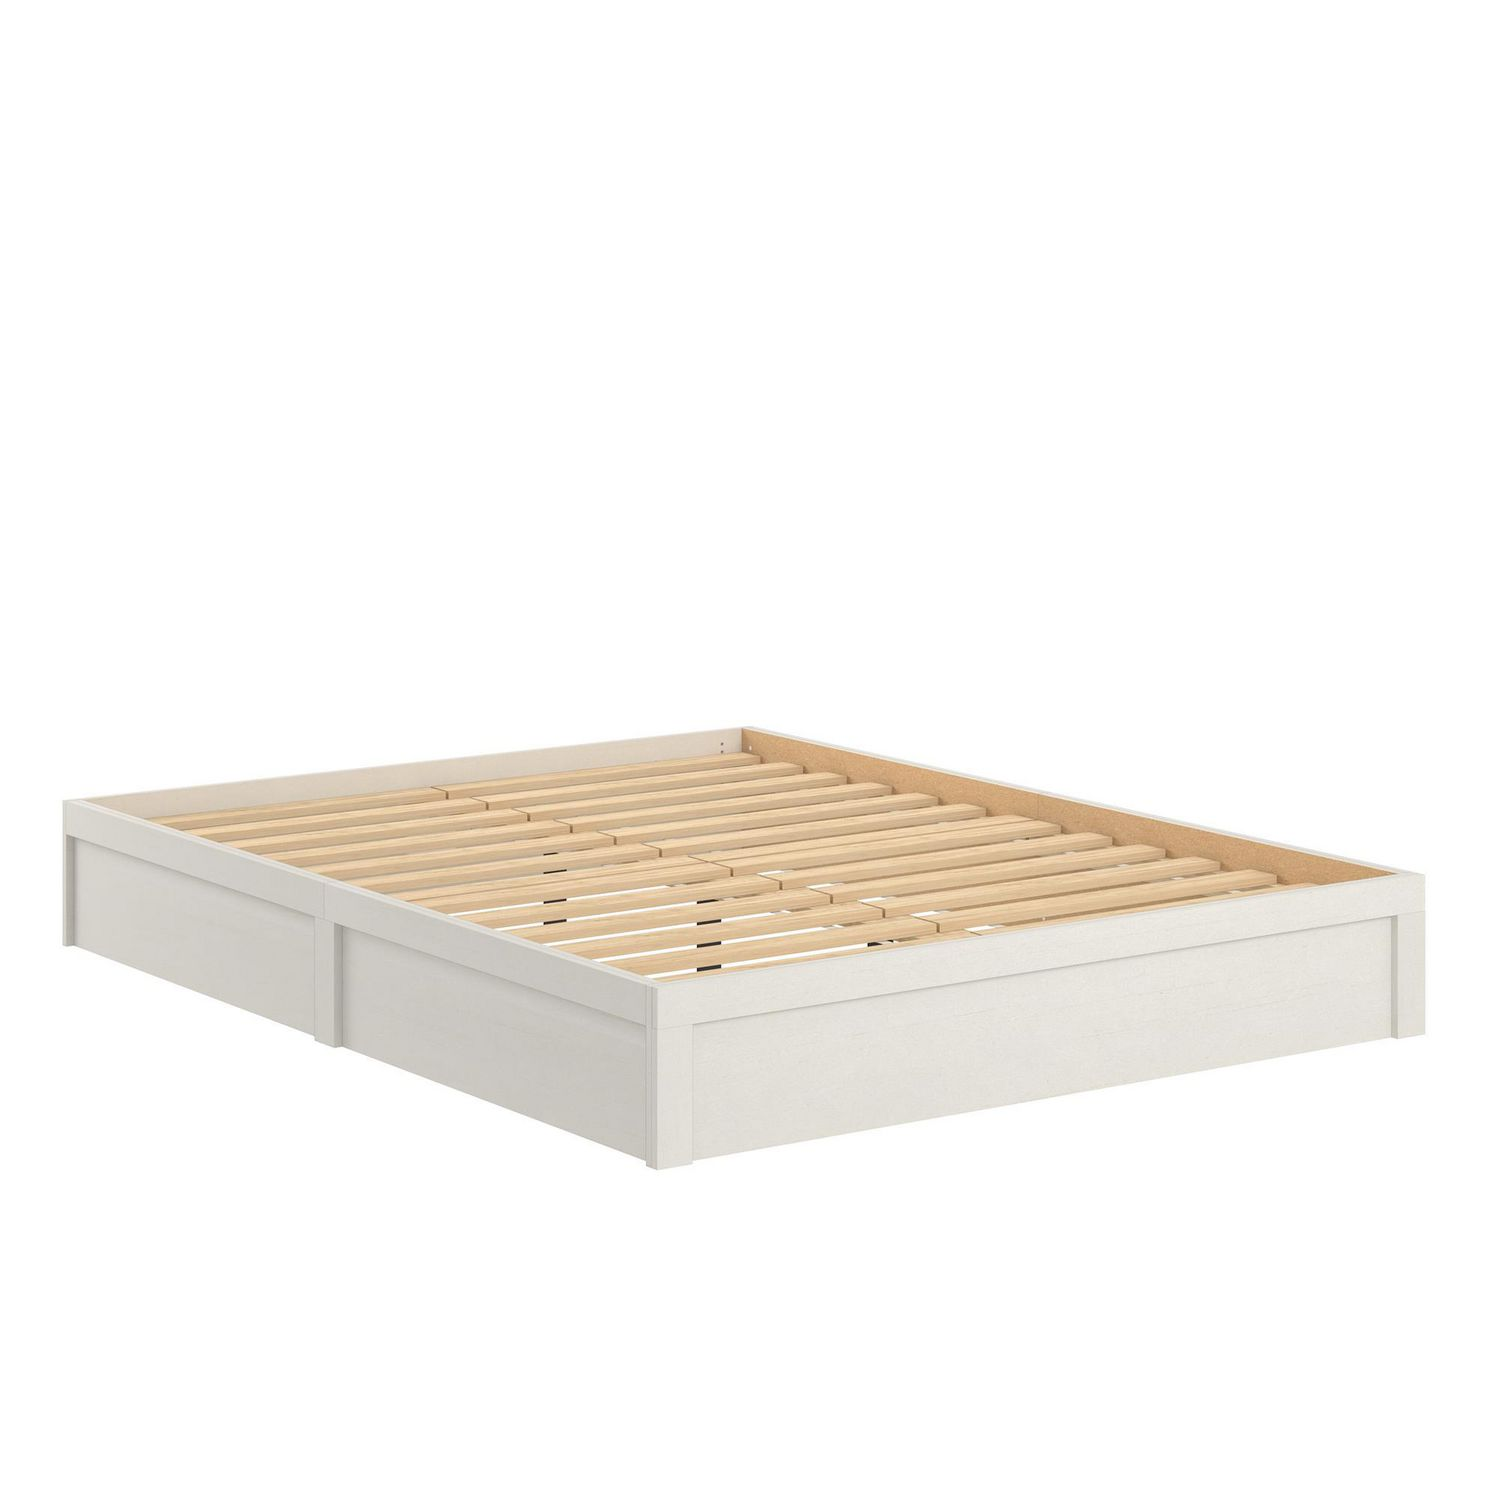 by base country frame frames mattresses sleep complete duty bed mattress canada heavy